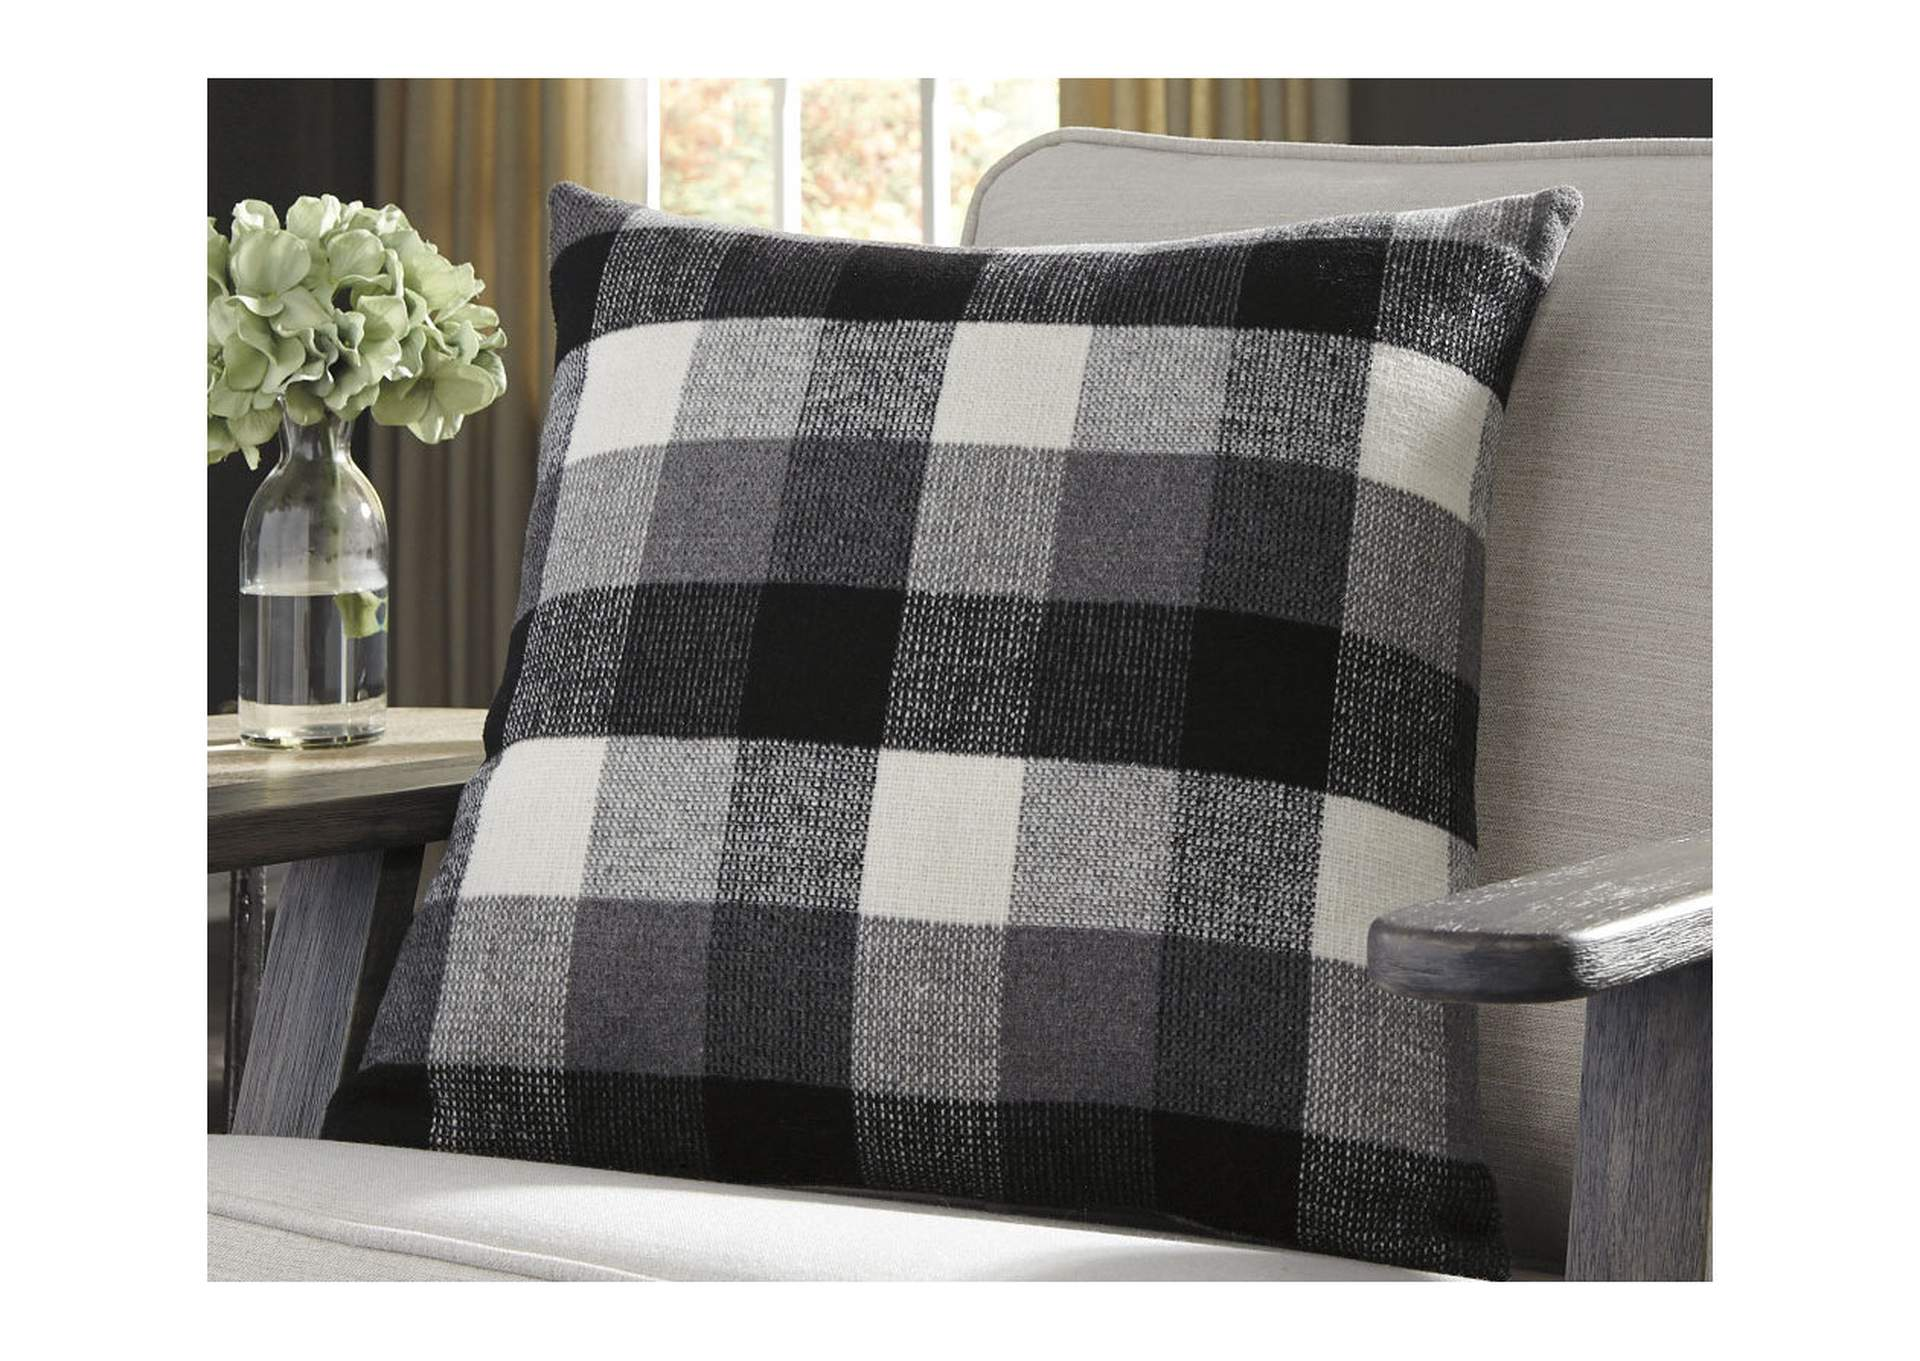 Carrigan Black/White Plaid Fabric Pillow,Signature Design By Ashley